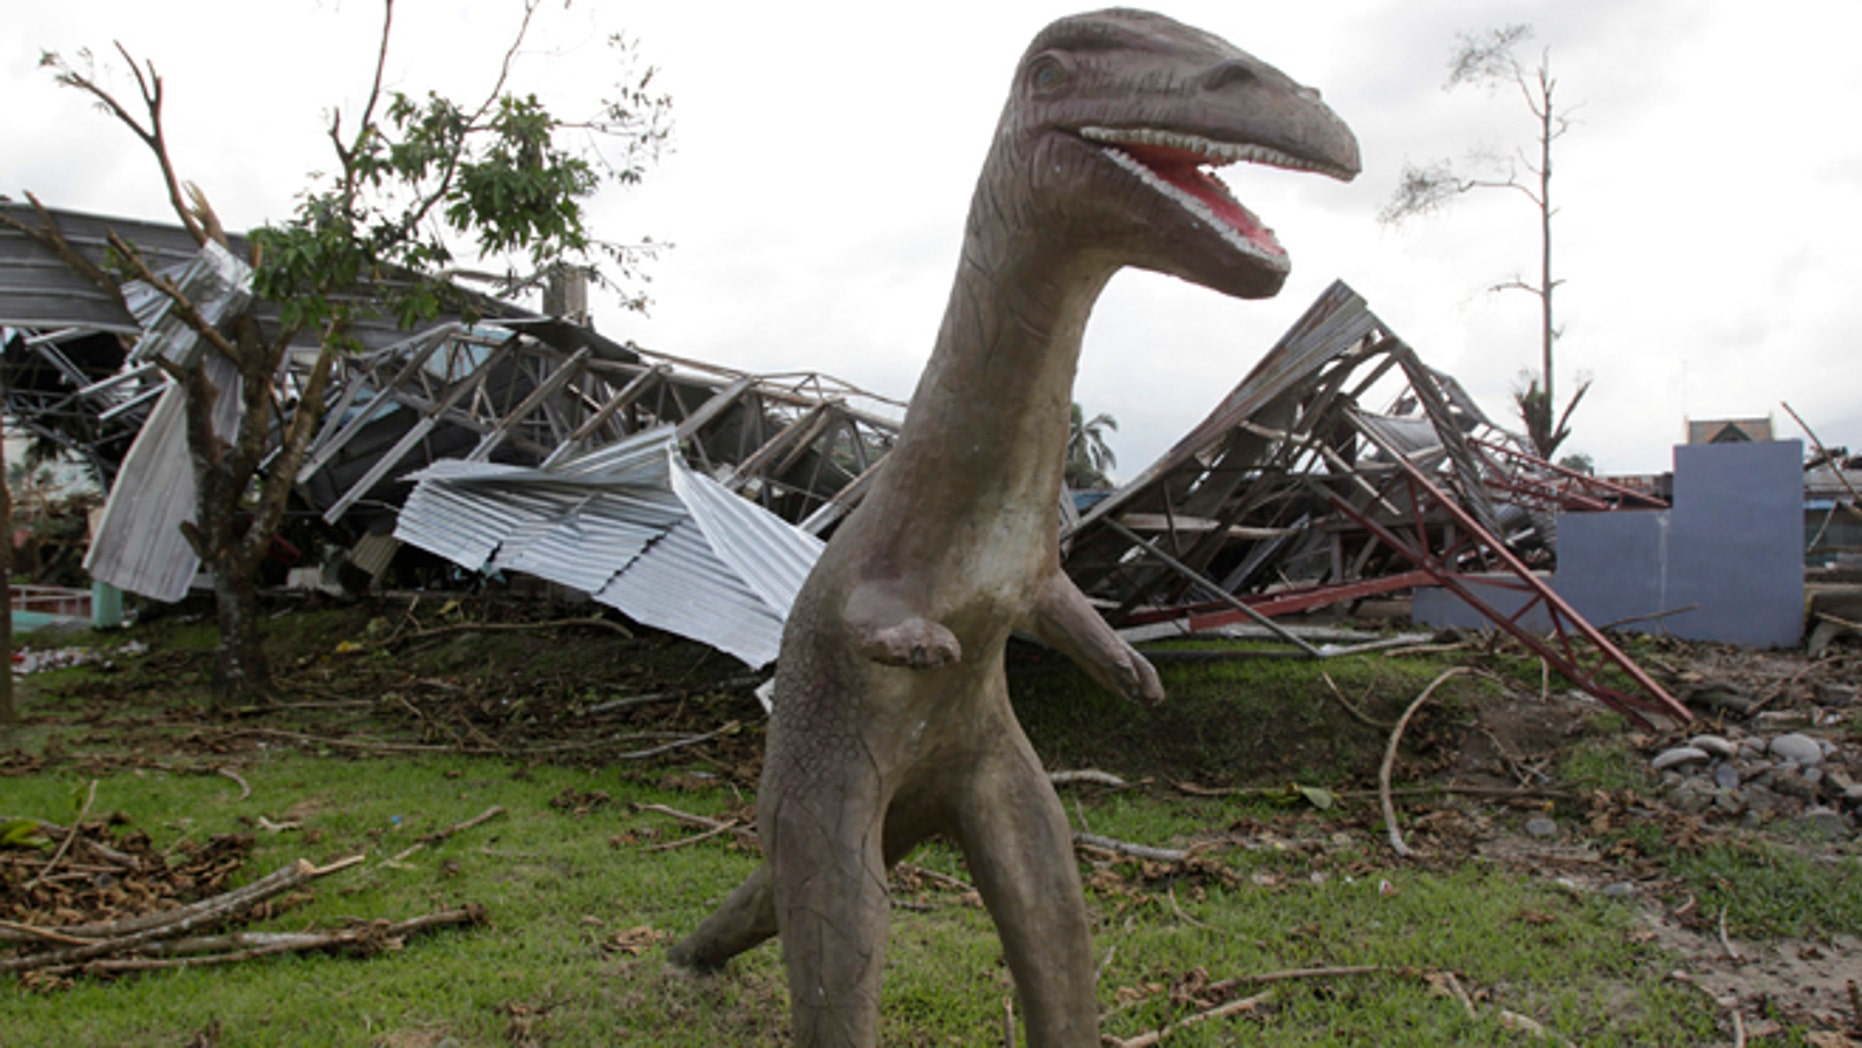 A concrete-made dinosaur statue stands next to a building destroyed by strong winds brought about at the height of Typhoon Bopha last Tuesday, at a playground in New Bataan town in Compostela Valley, southern Philippines December 9, 2012. A much-weakened storm was set to make landfall in the Philippines' northwest on Sunday, five days after the year's strongest typhoon, Typhoon Bopha, killed 540 people and caused crop damage worth about 8 billion pesos in the south. Residents in typhoon-hit areas on southern Mindanao island have been appealing for food, water and other relief supplies. REUTERS/Erik De Castro (PHILIPPINES - Tags: DISASTER ENVIRONMENT SOCIETY)